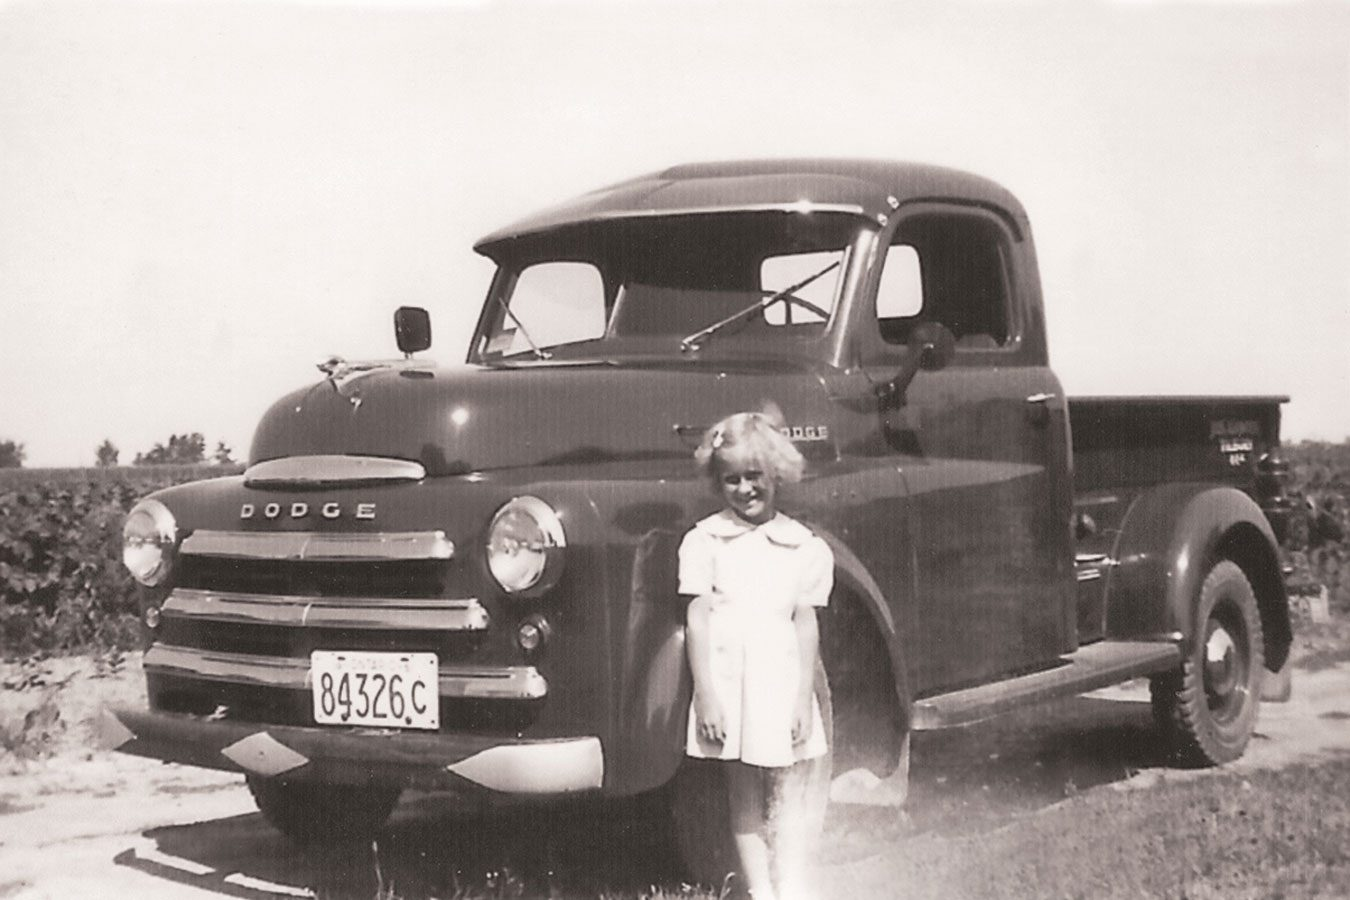 Millie and the brand new Dodge Ram in 1950